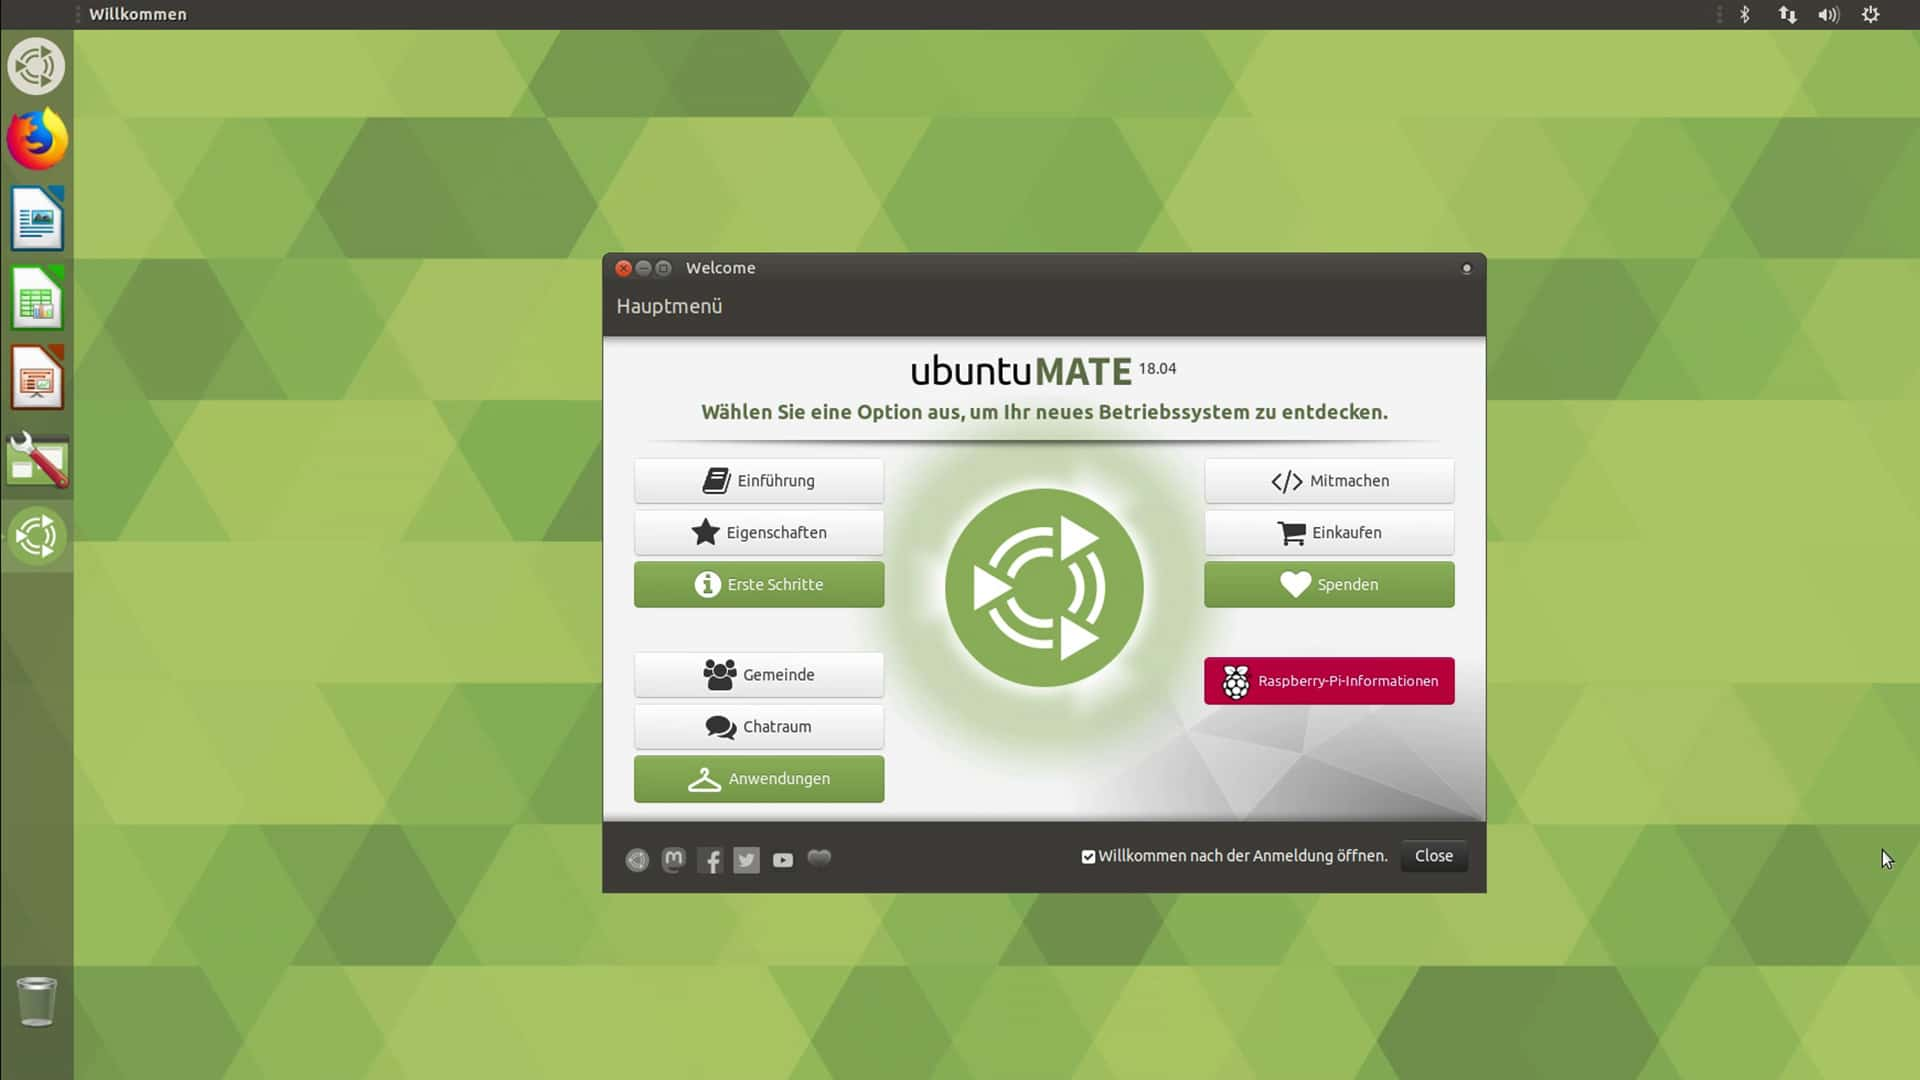 Raspberry Pi Betriebssysteme - UbuntuMATE - digitalewelt.at